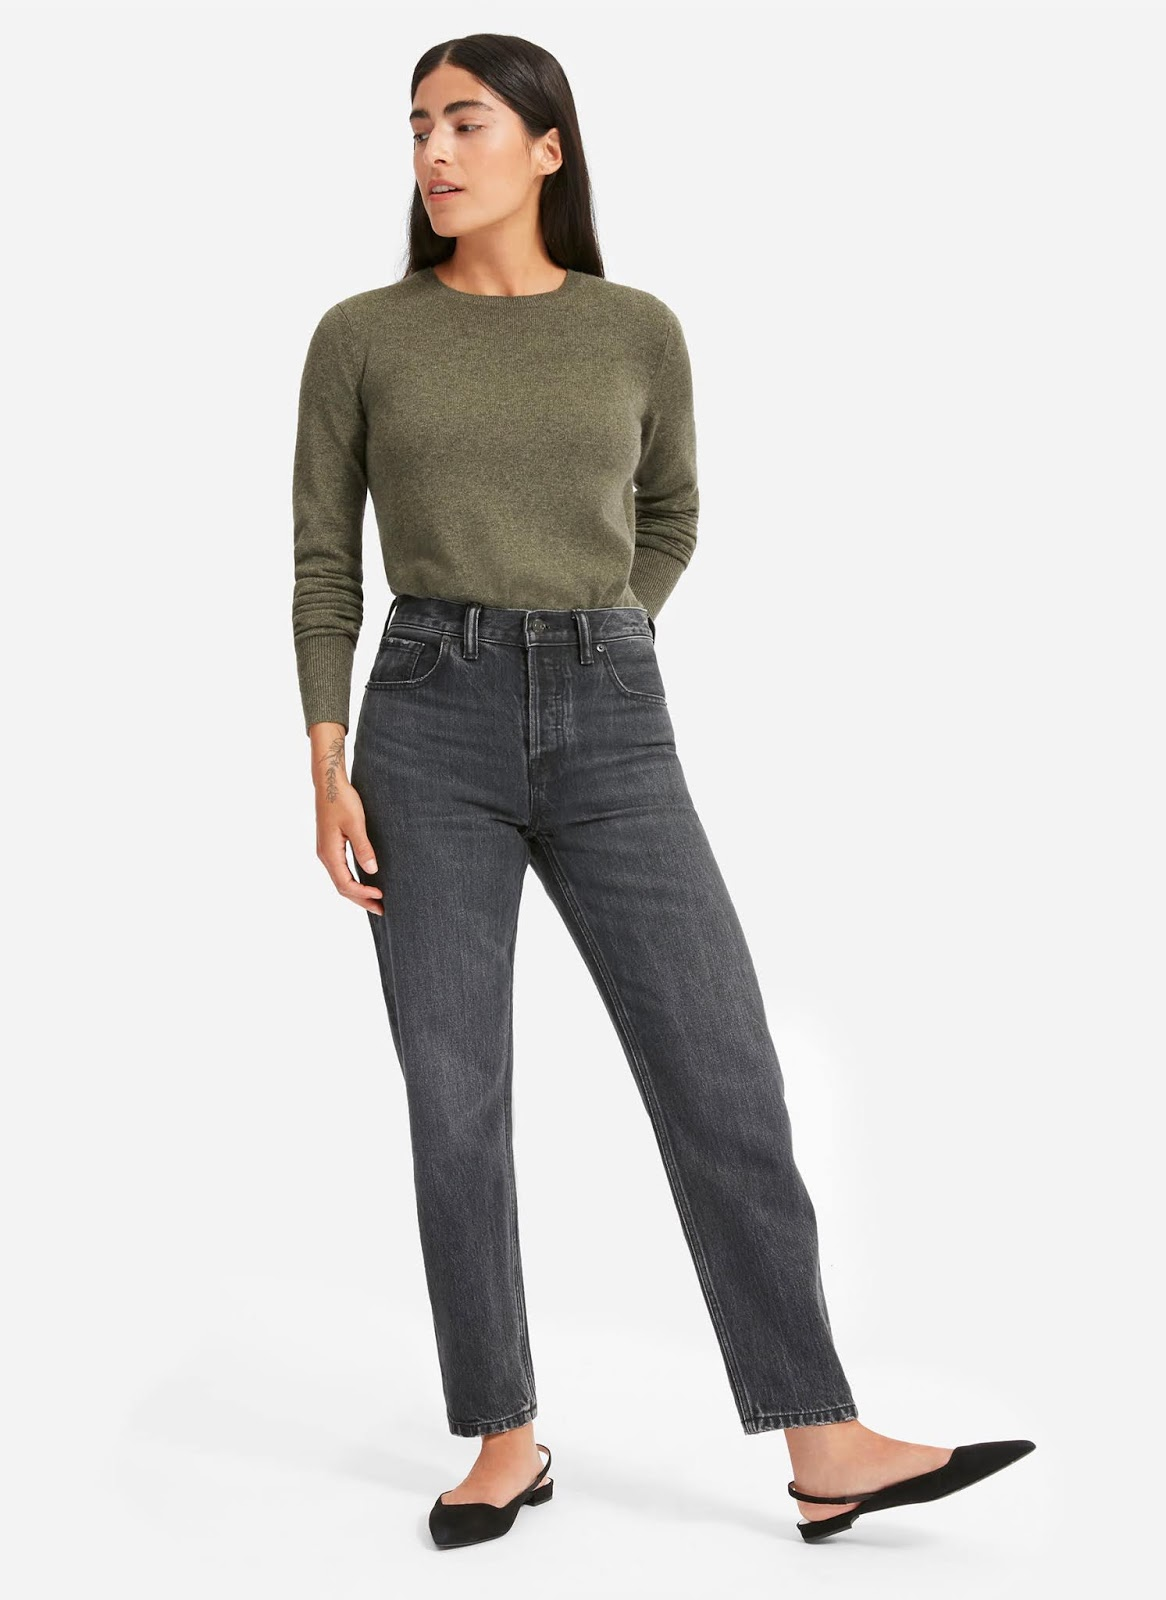 Fall Outfit Inspiration — Green Cashmere Sweater, Black Straight-Leg Jeans, Black Flats